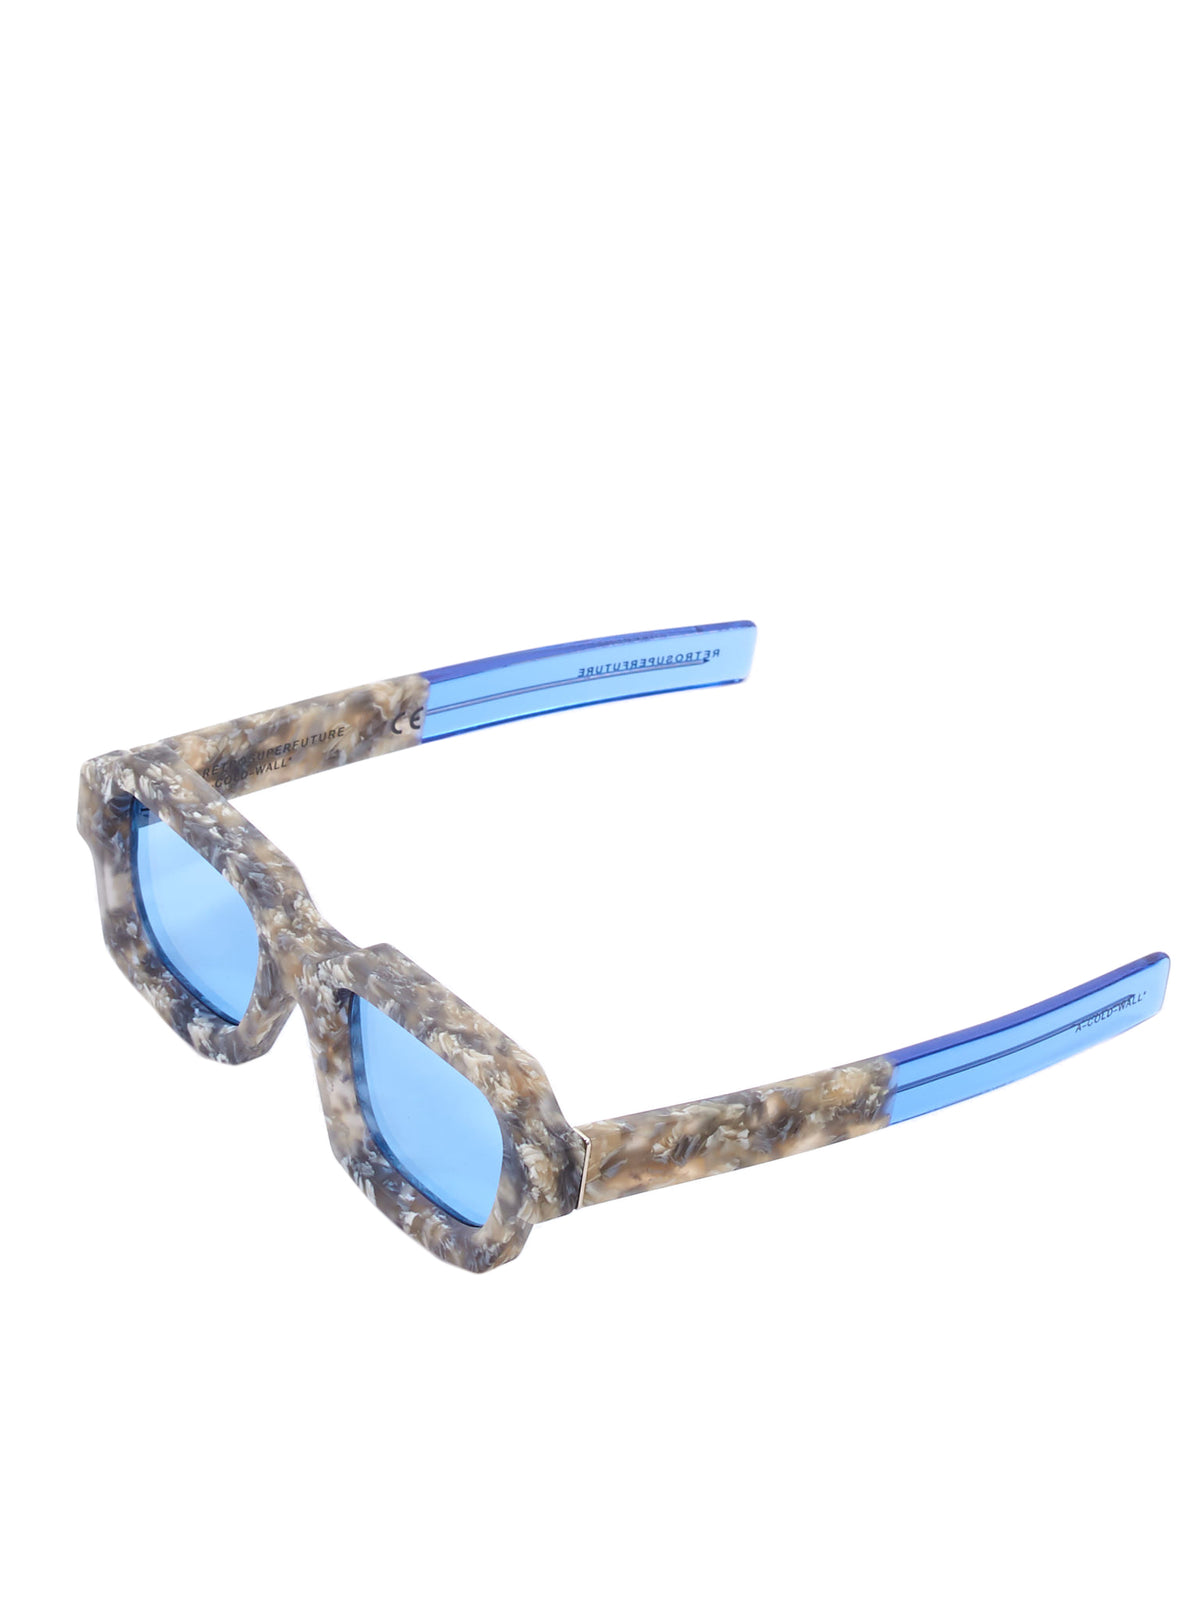 Caro Pebble Sunglasses (84ZACW1-PEBBLE)